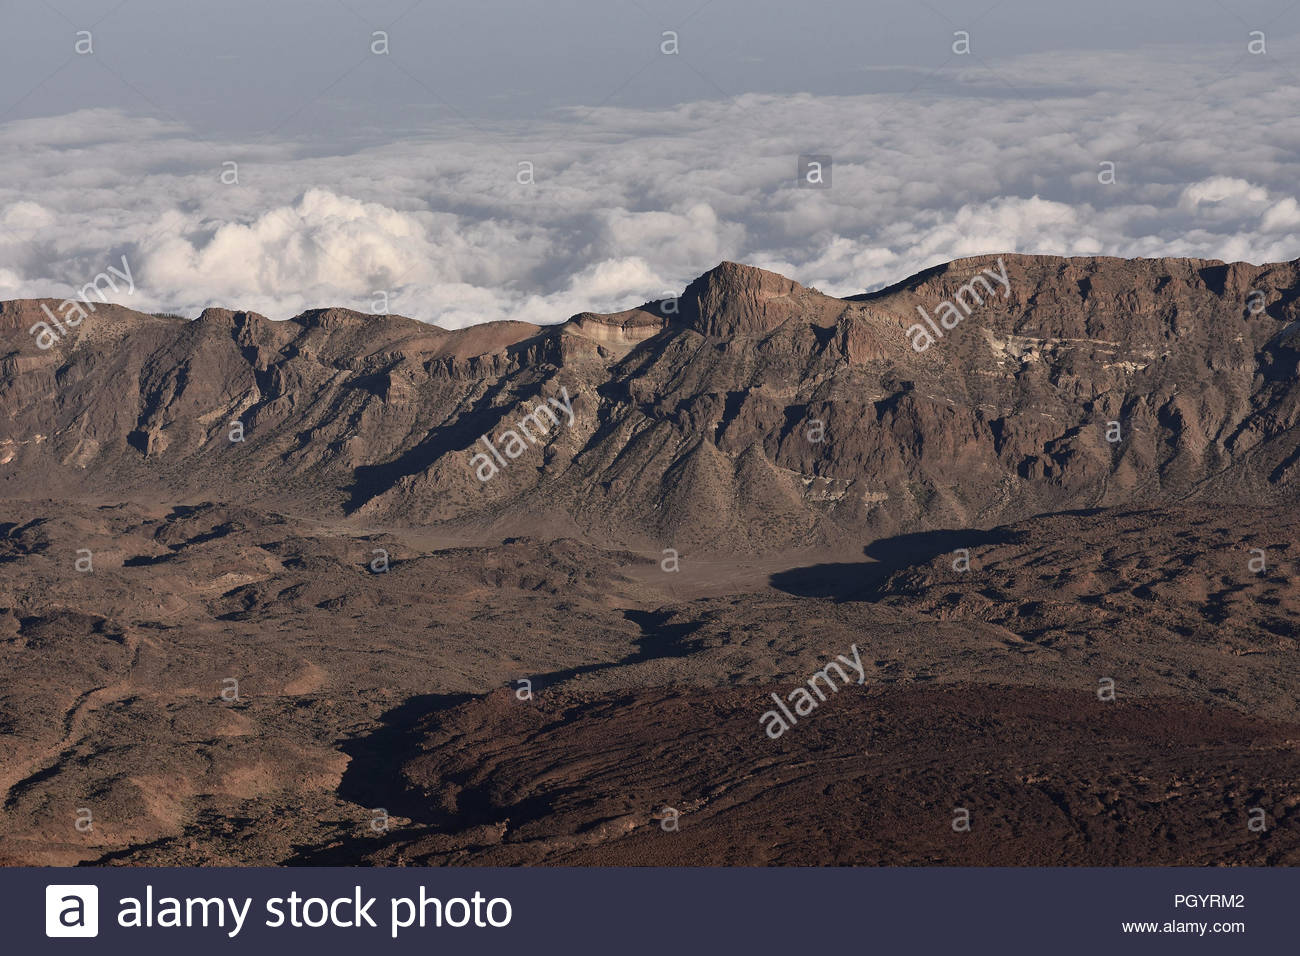 Volcanic mountains and lava fields of Teide National Park, Tenerife Canary Islands Spain. Elevated view from Mount Teide (3260 m above sea level). - Stock Image